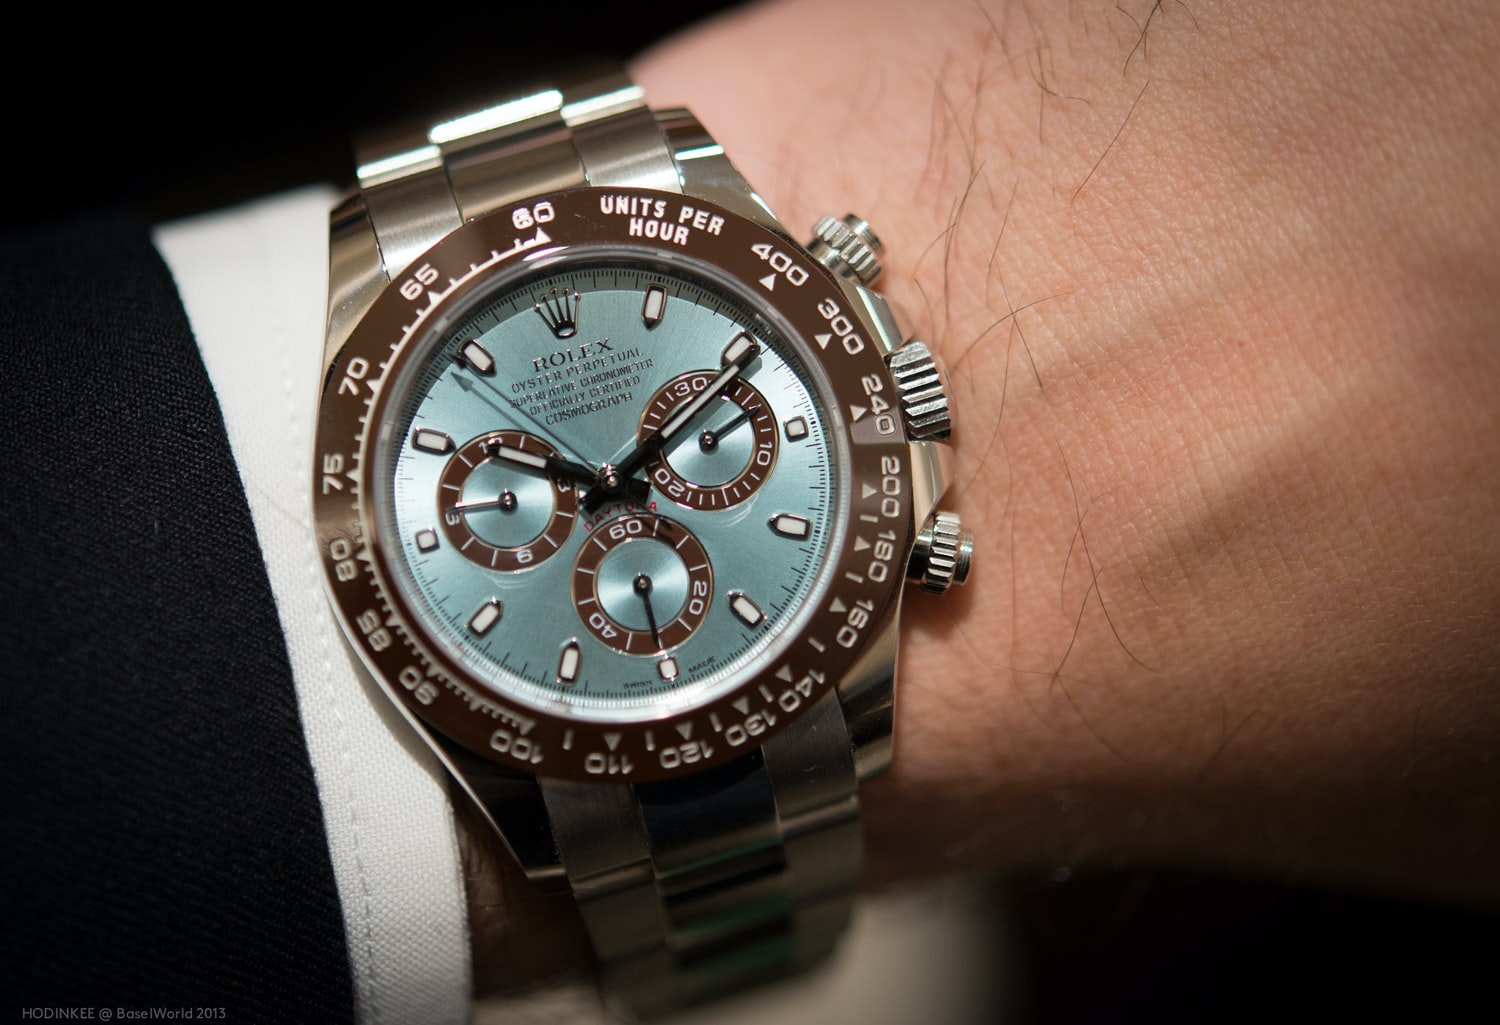 Hands-On: With The 50th Anniversary Rolex Cosmograph Daytona In Platinum Reference 116506 (Live Pics, Full Details, Pricing)